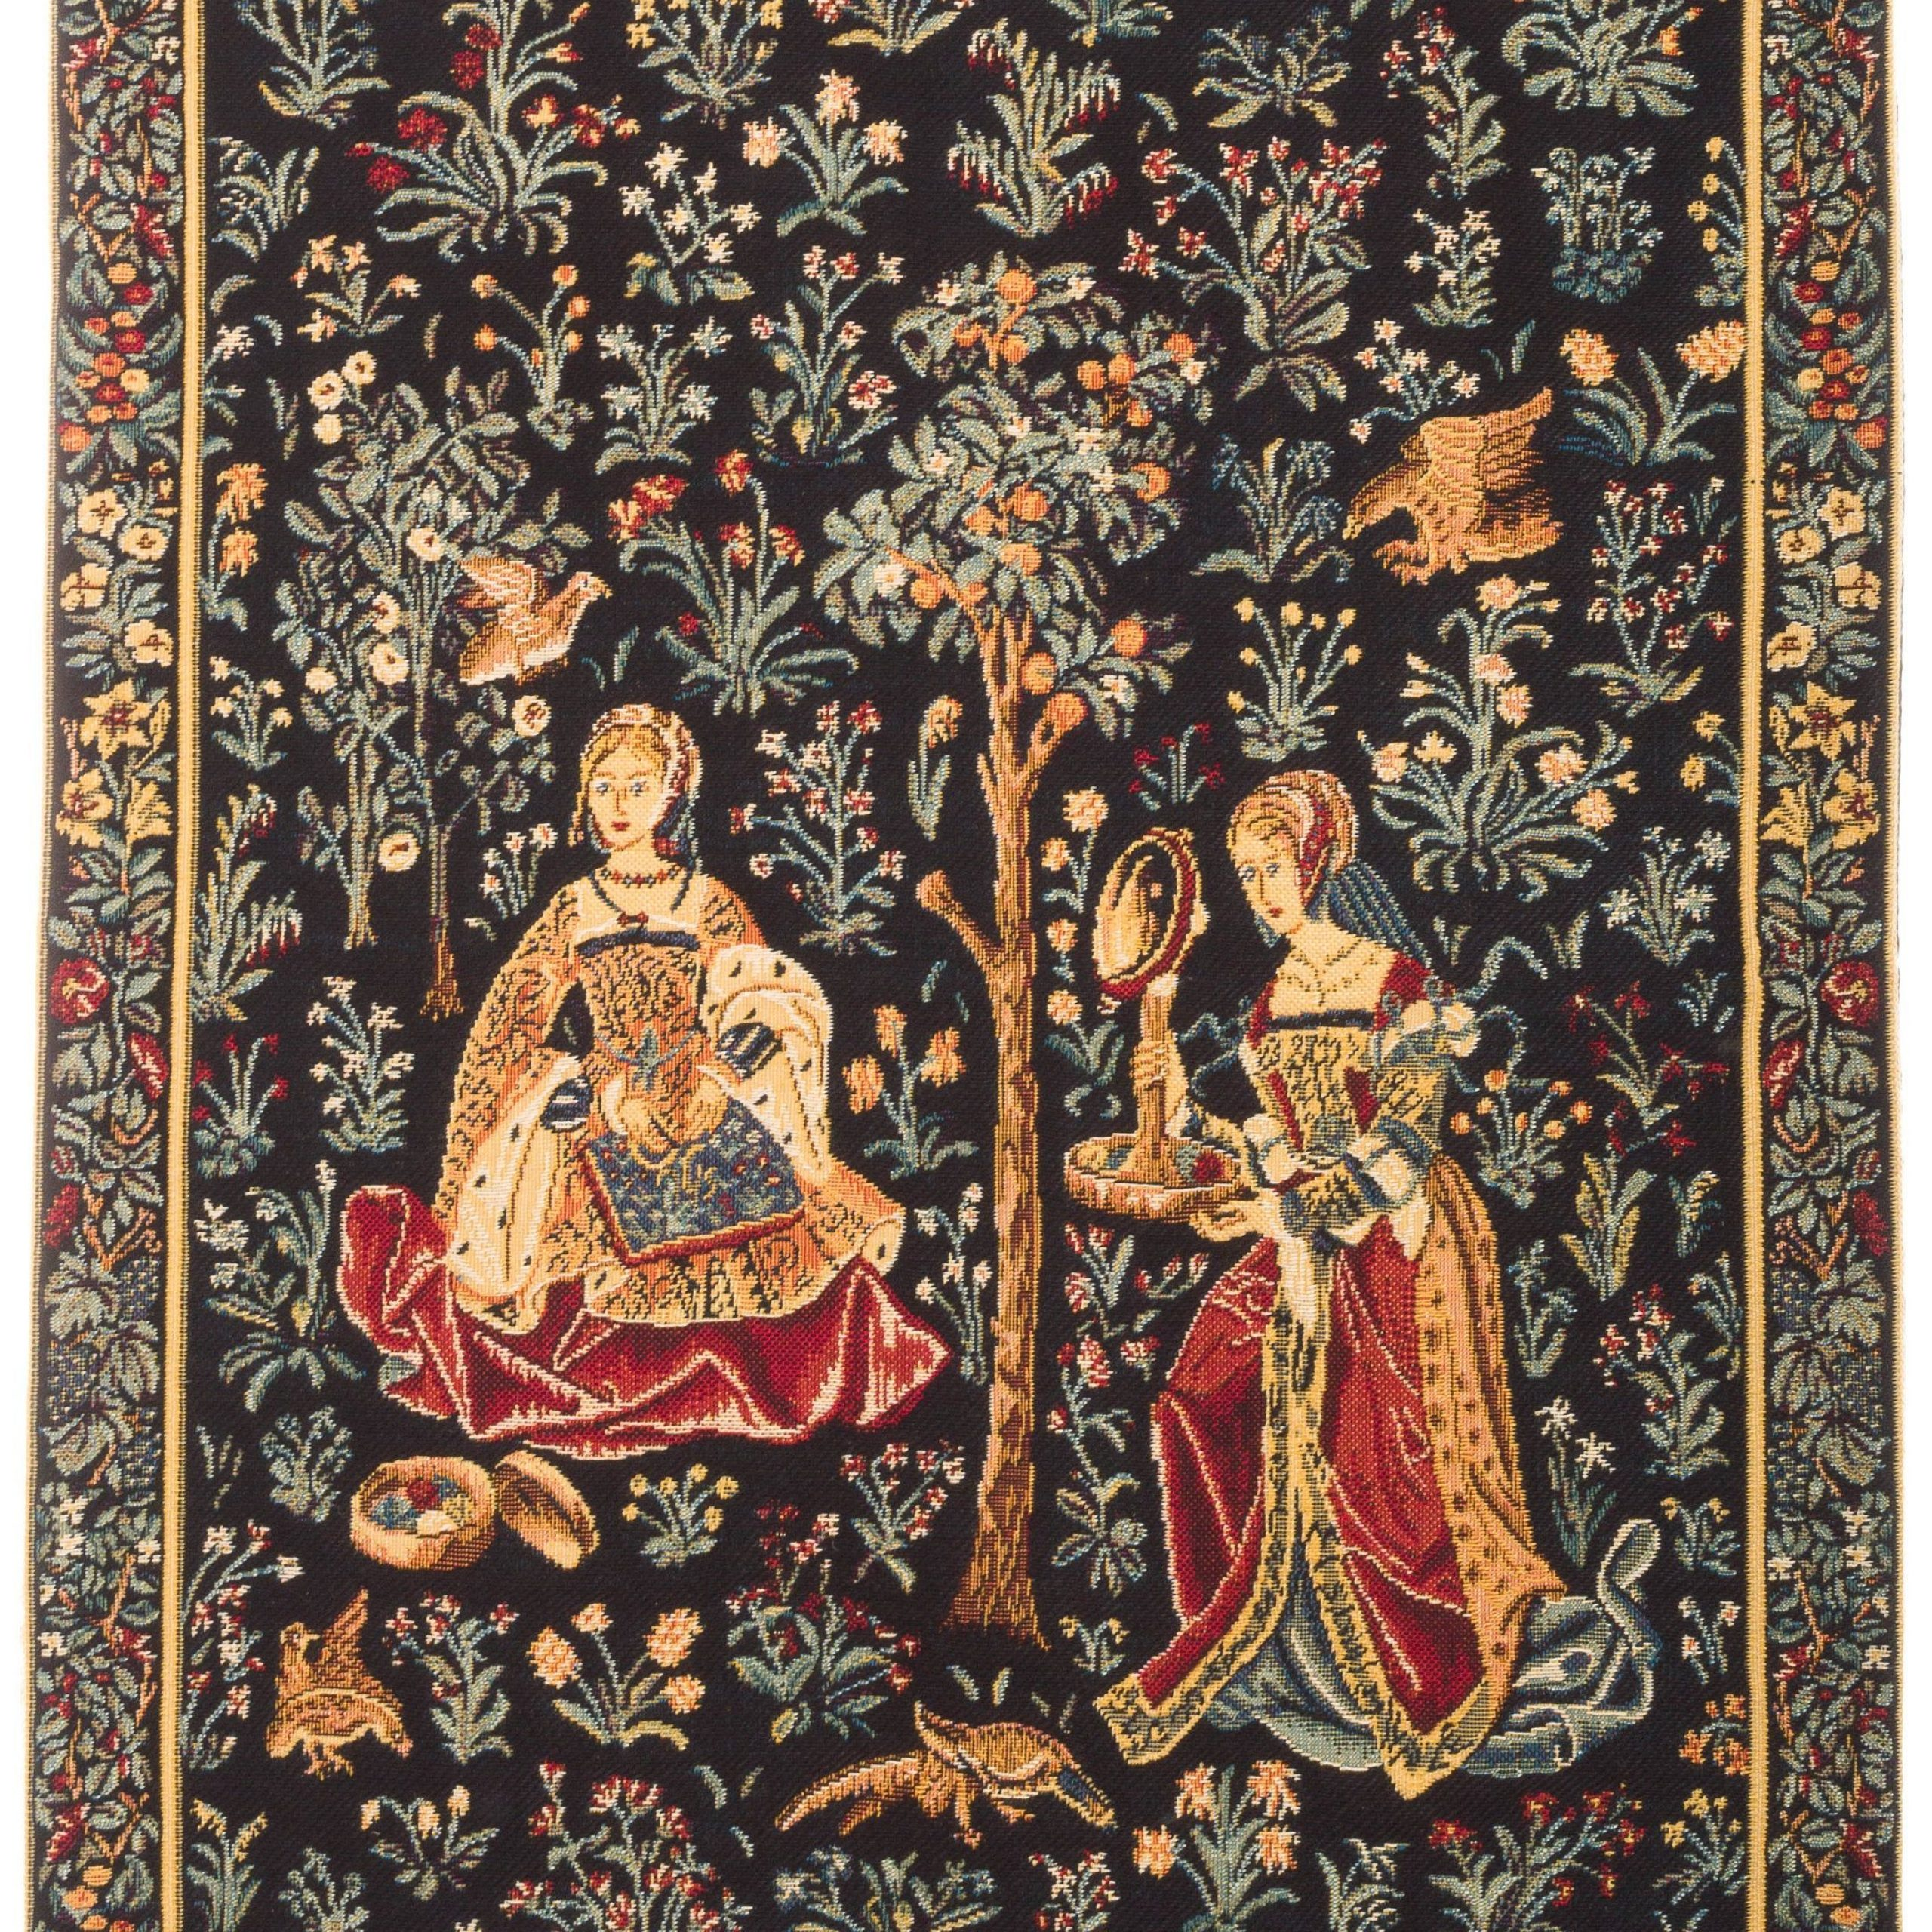 Medieval Tapestry Wall Hanging – Embroidery Scene Intended For Most Popular Blended Fabric Italian Wall Hangings (View 9 of 20)